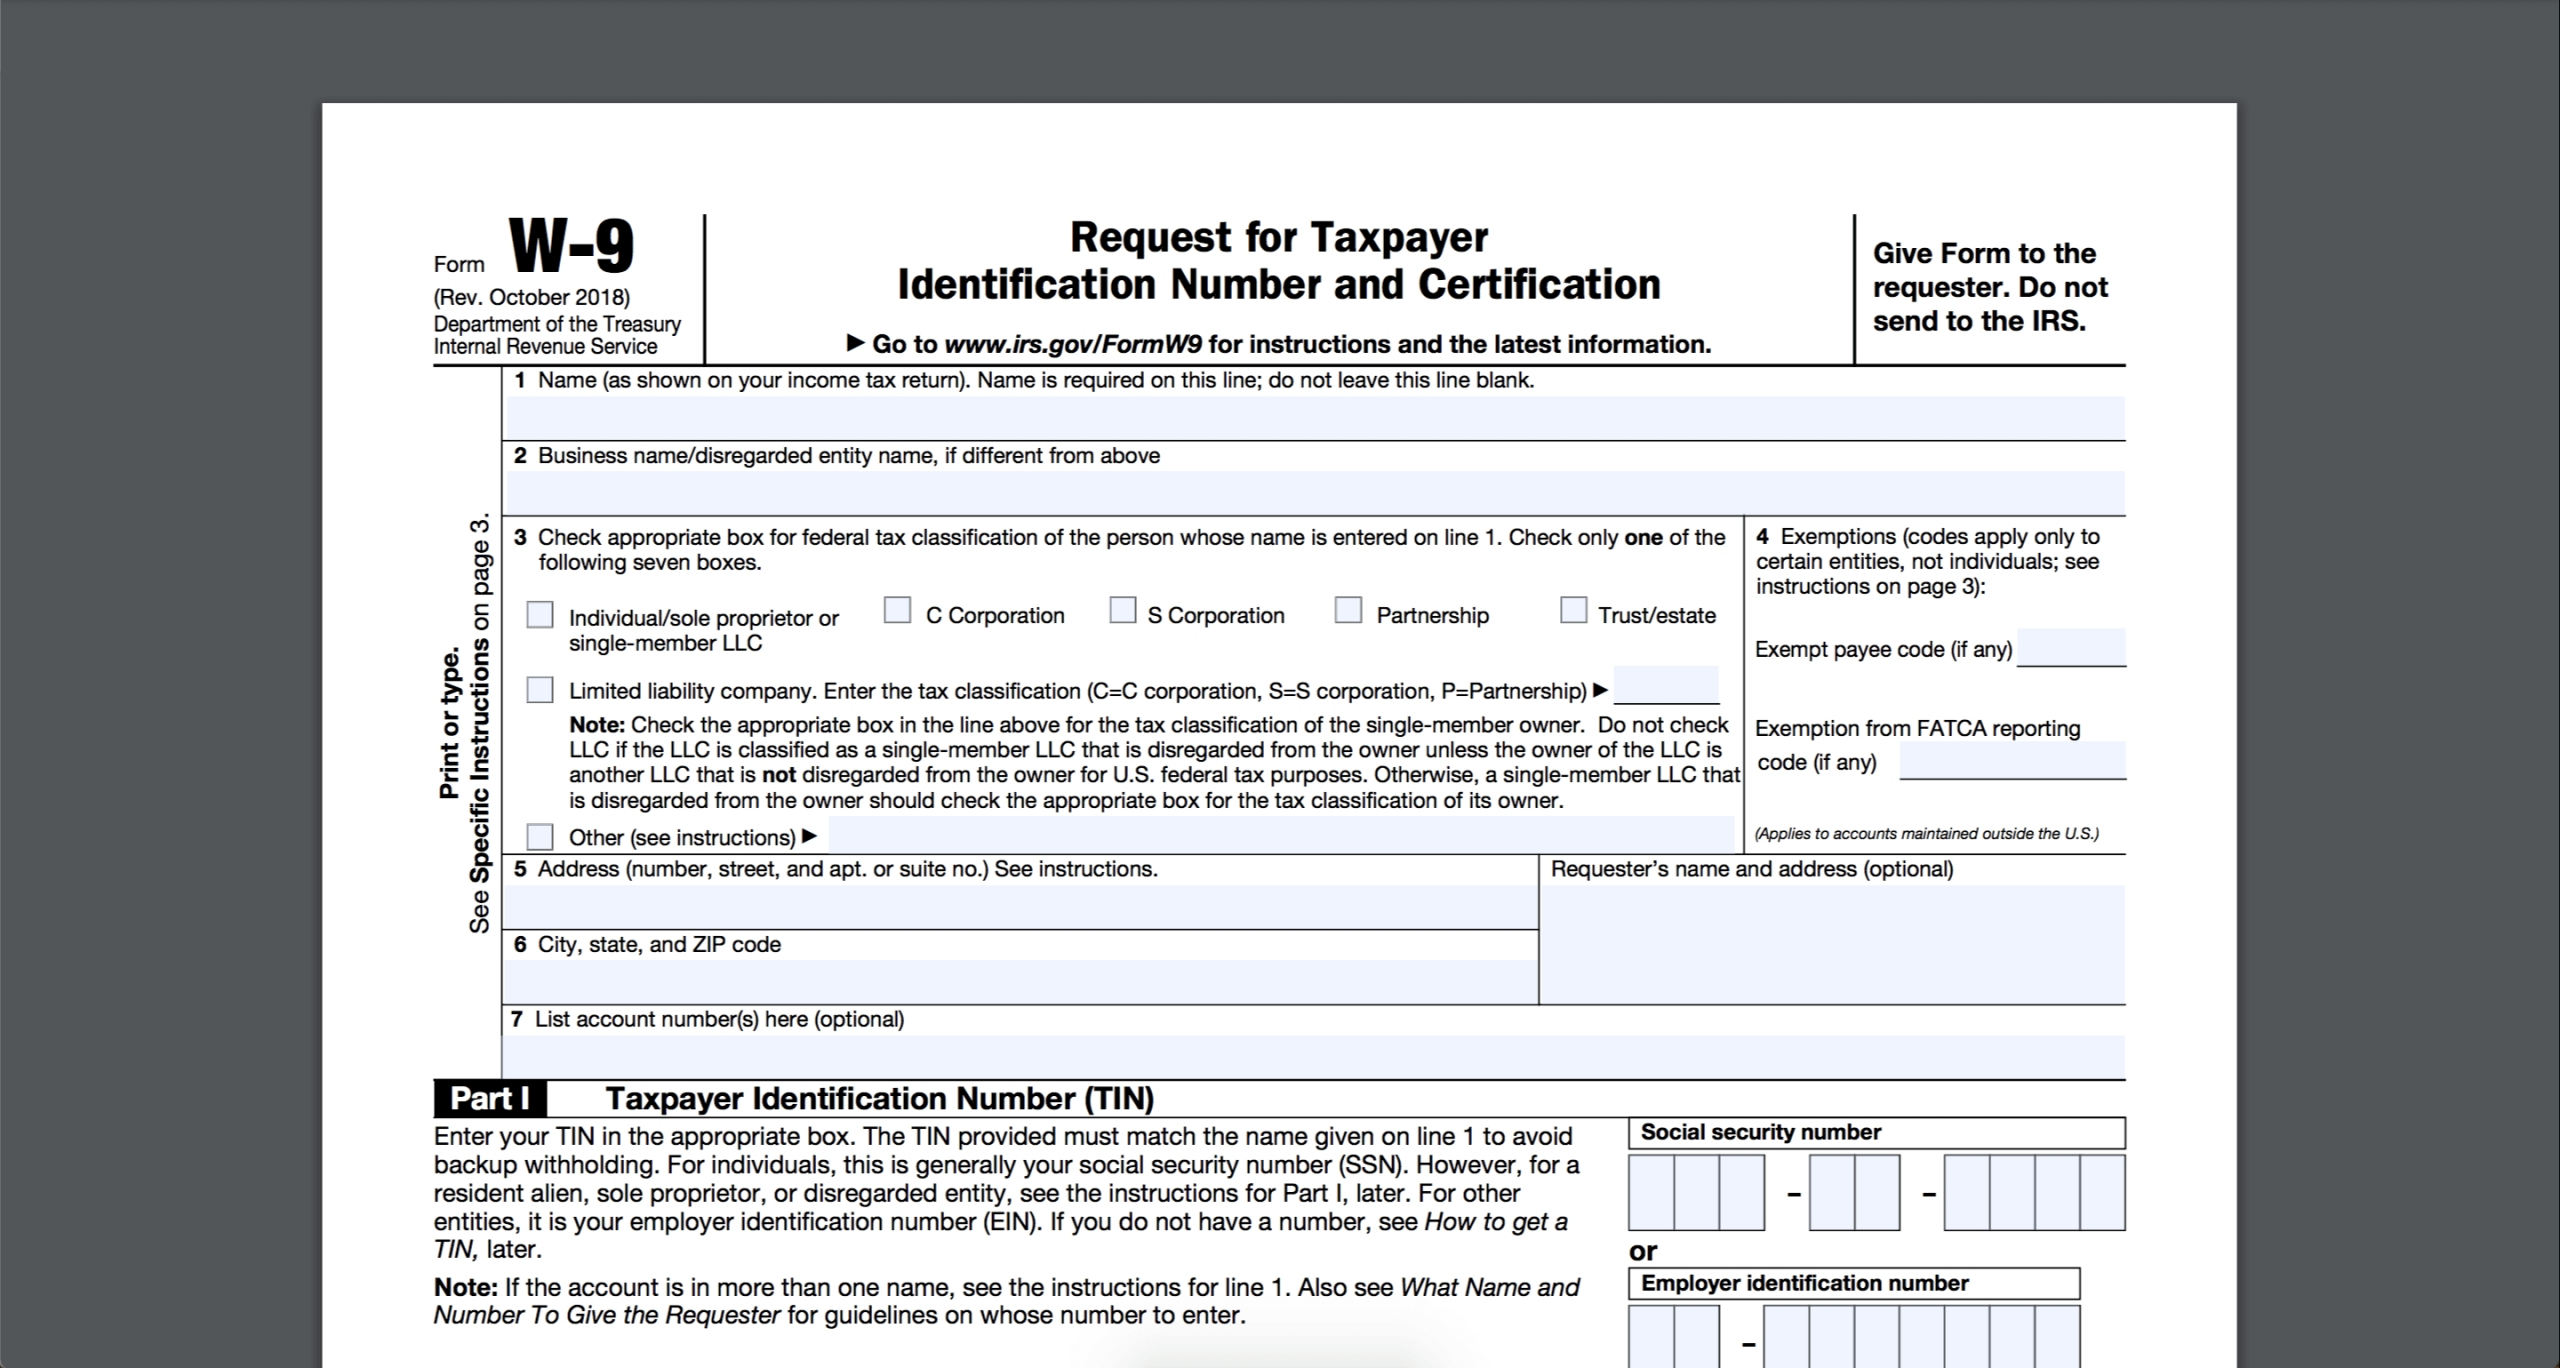 How To Fill Out And Sign Your W-9 Form Online-Blank W 9 Printable Form Template 2021